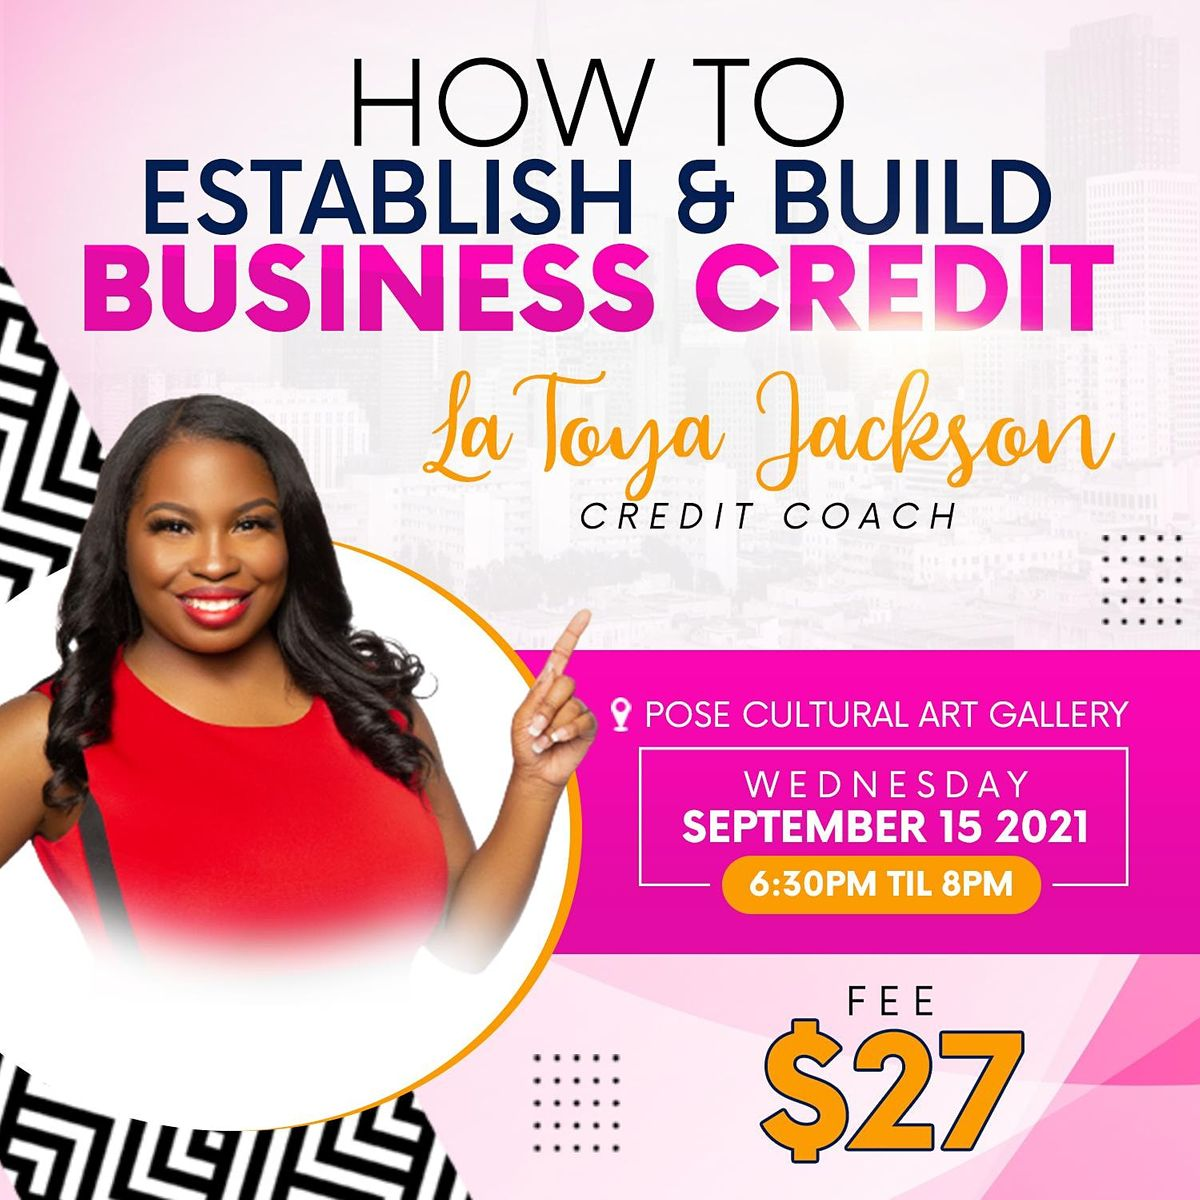 HOW TO BUILD AND ESTABLISH BUSINESS CREDIT